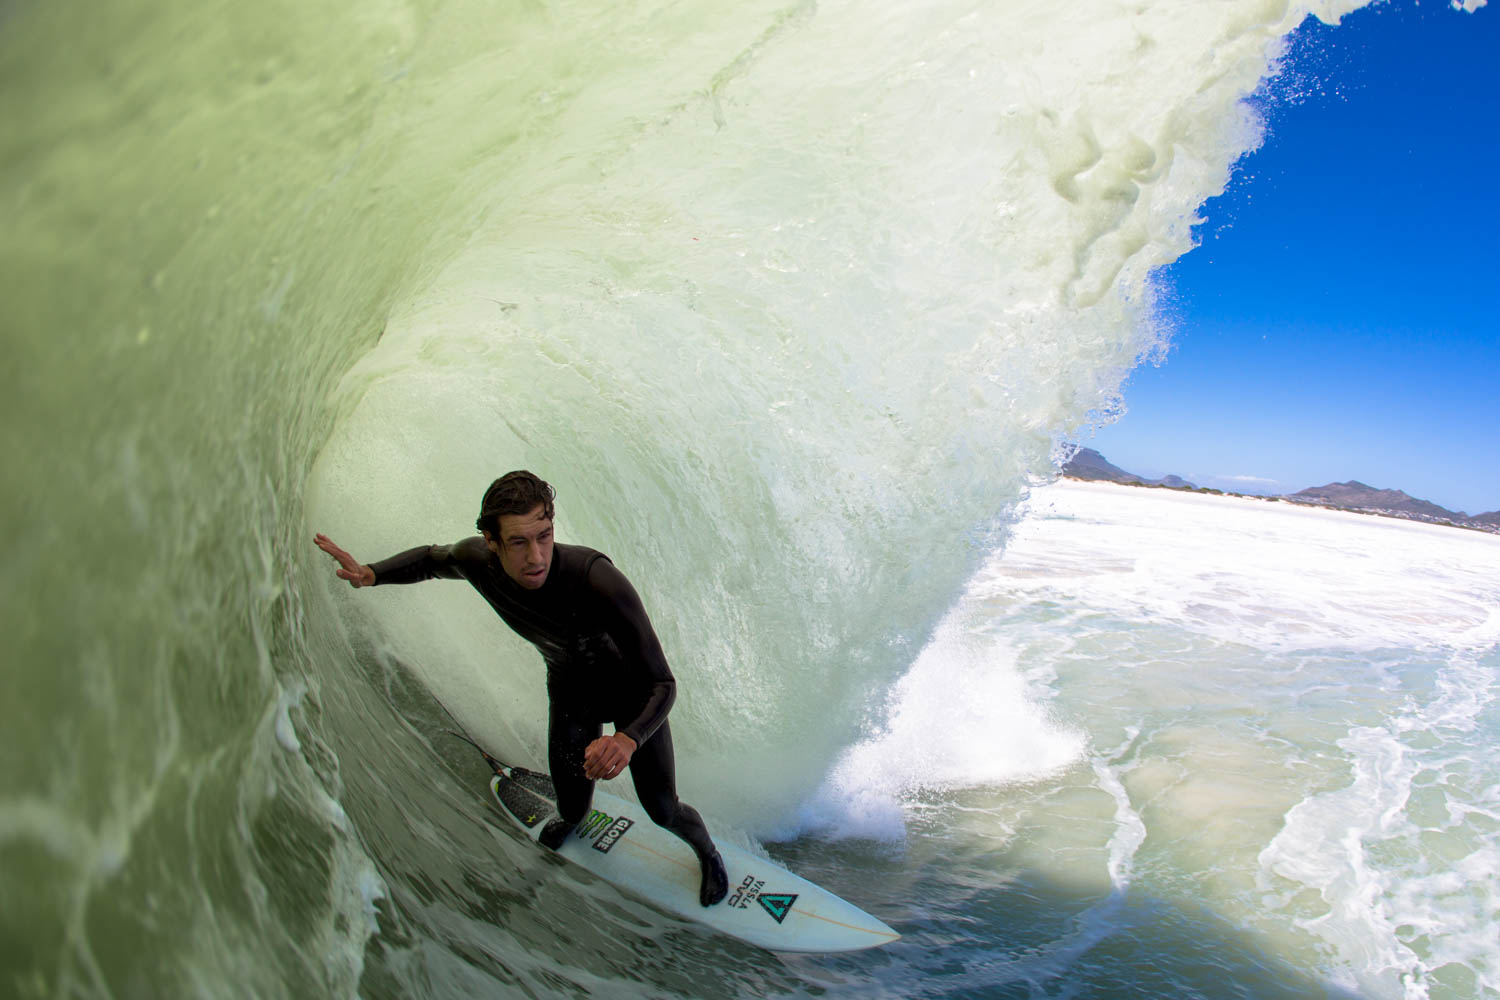 Brendon Gibbens - Uberschuss Surfing Video